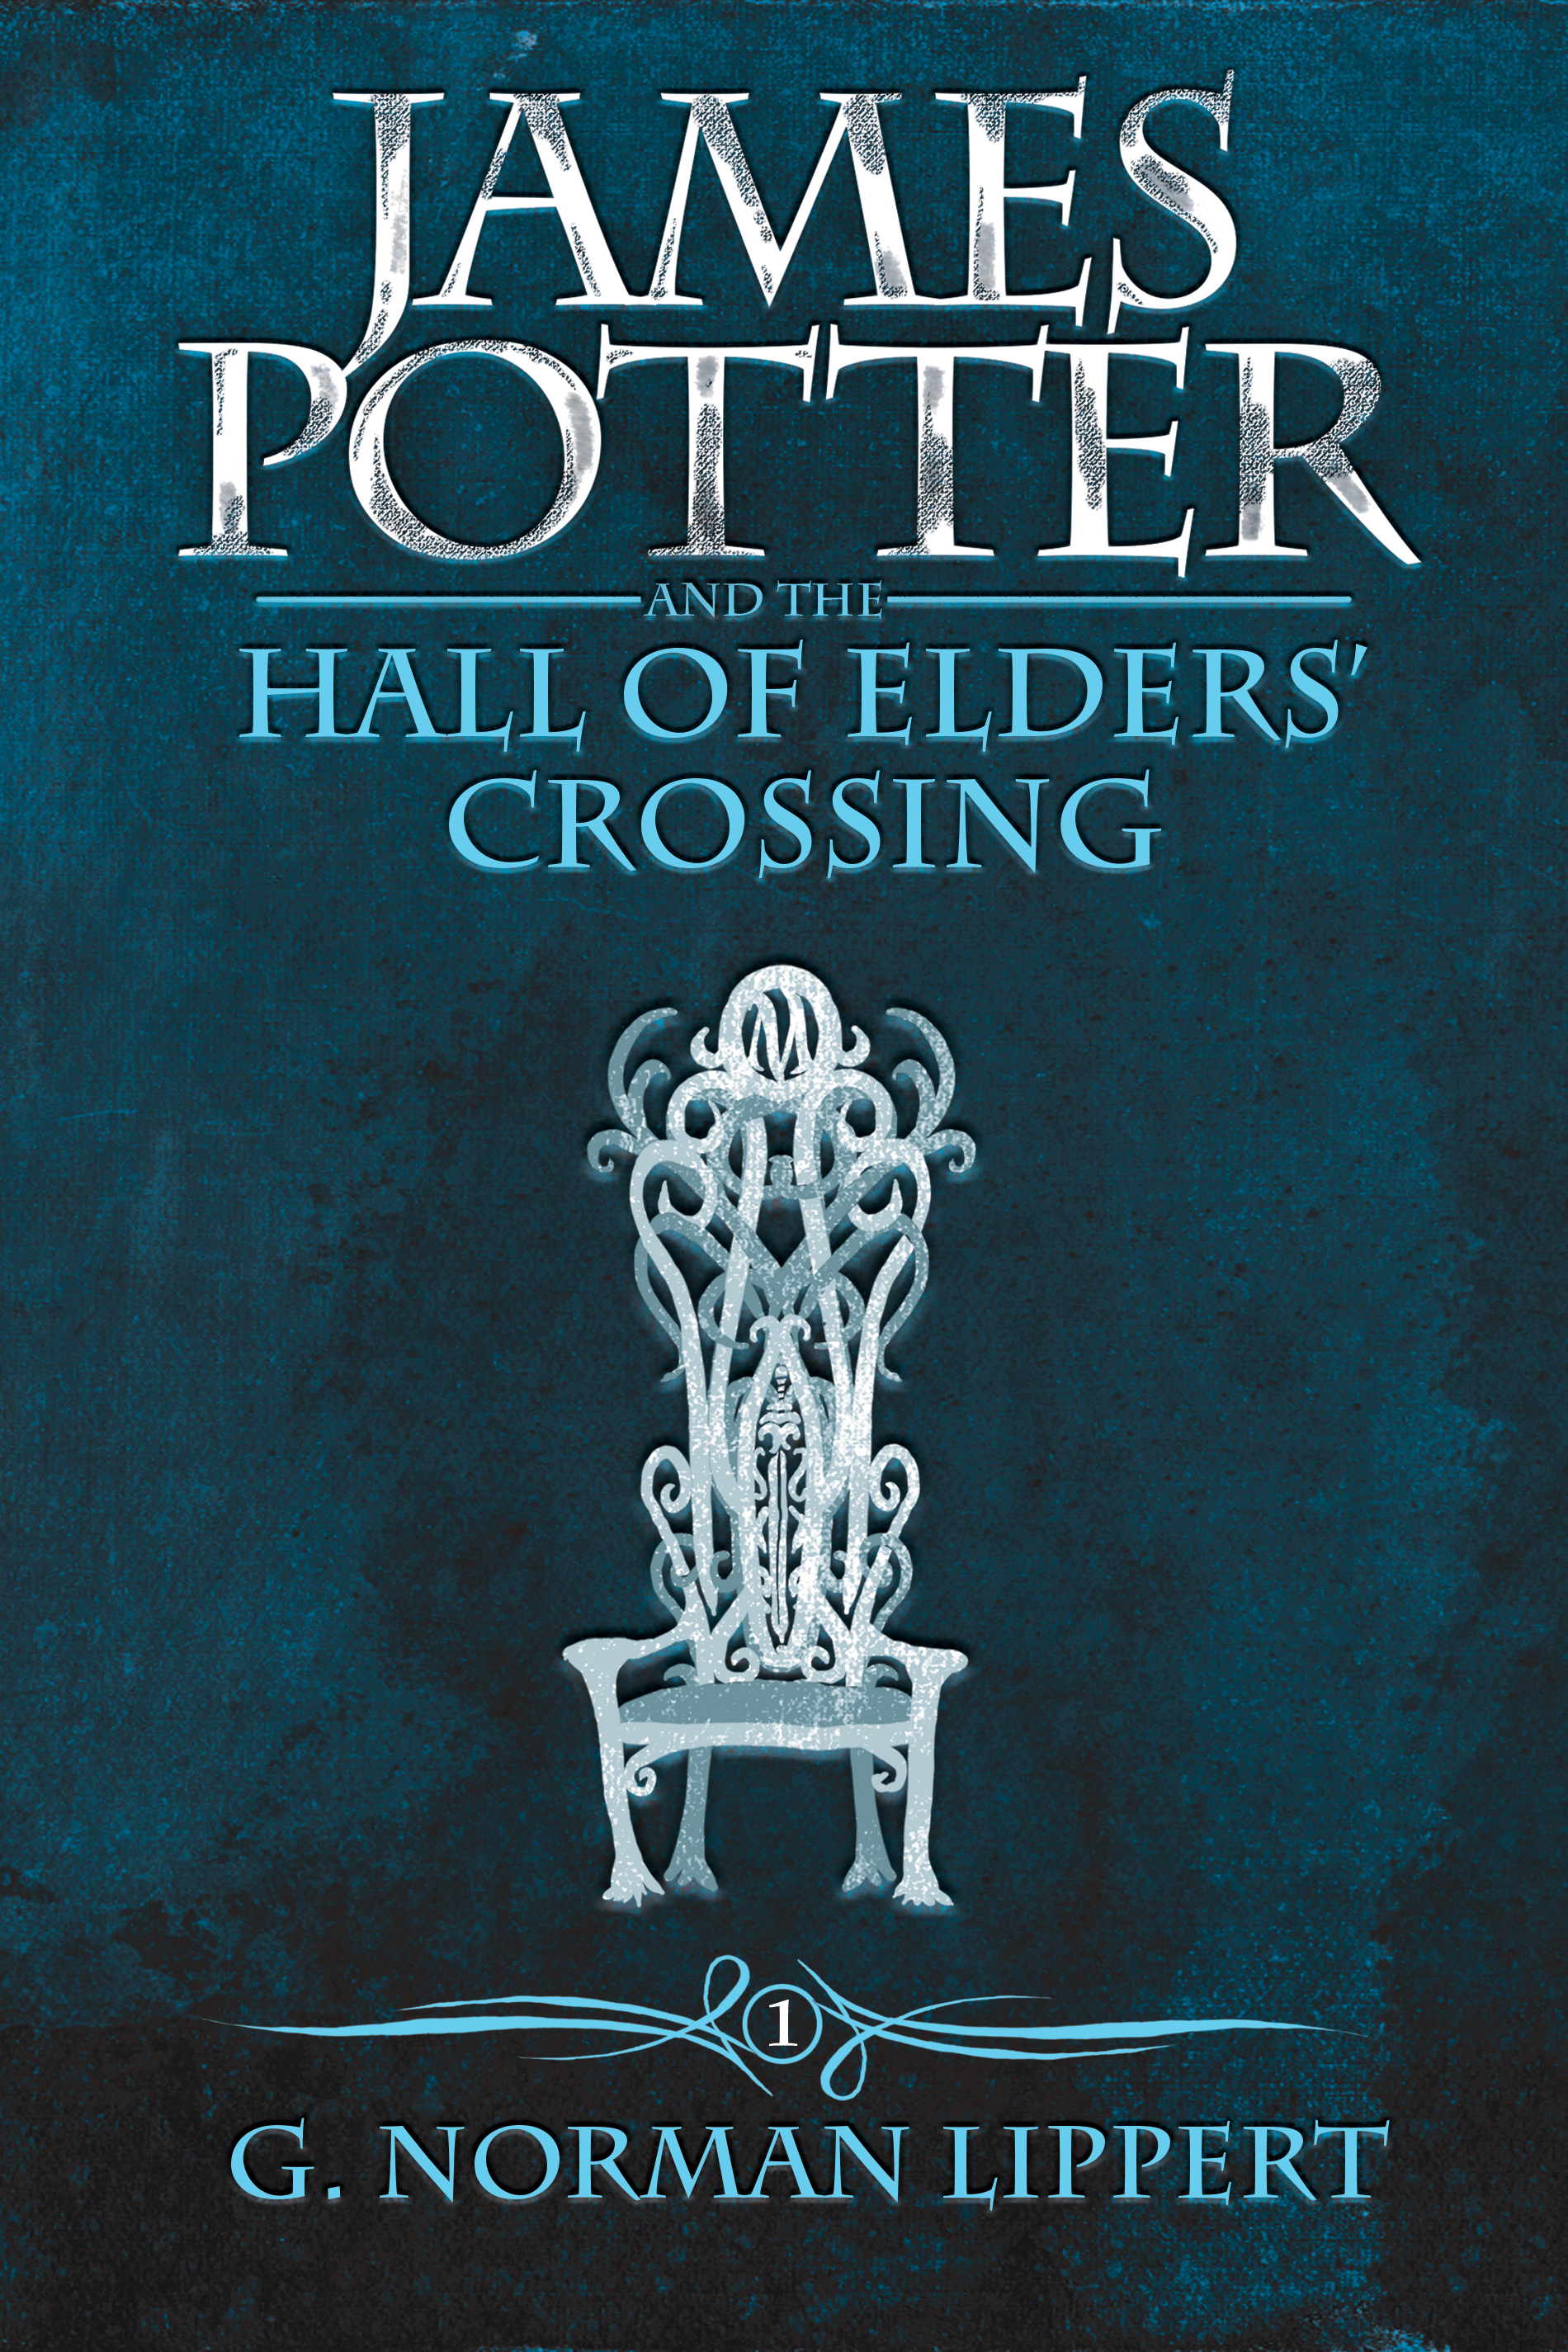 Book Cover Series Books : James potter and the hall of elders crossing